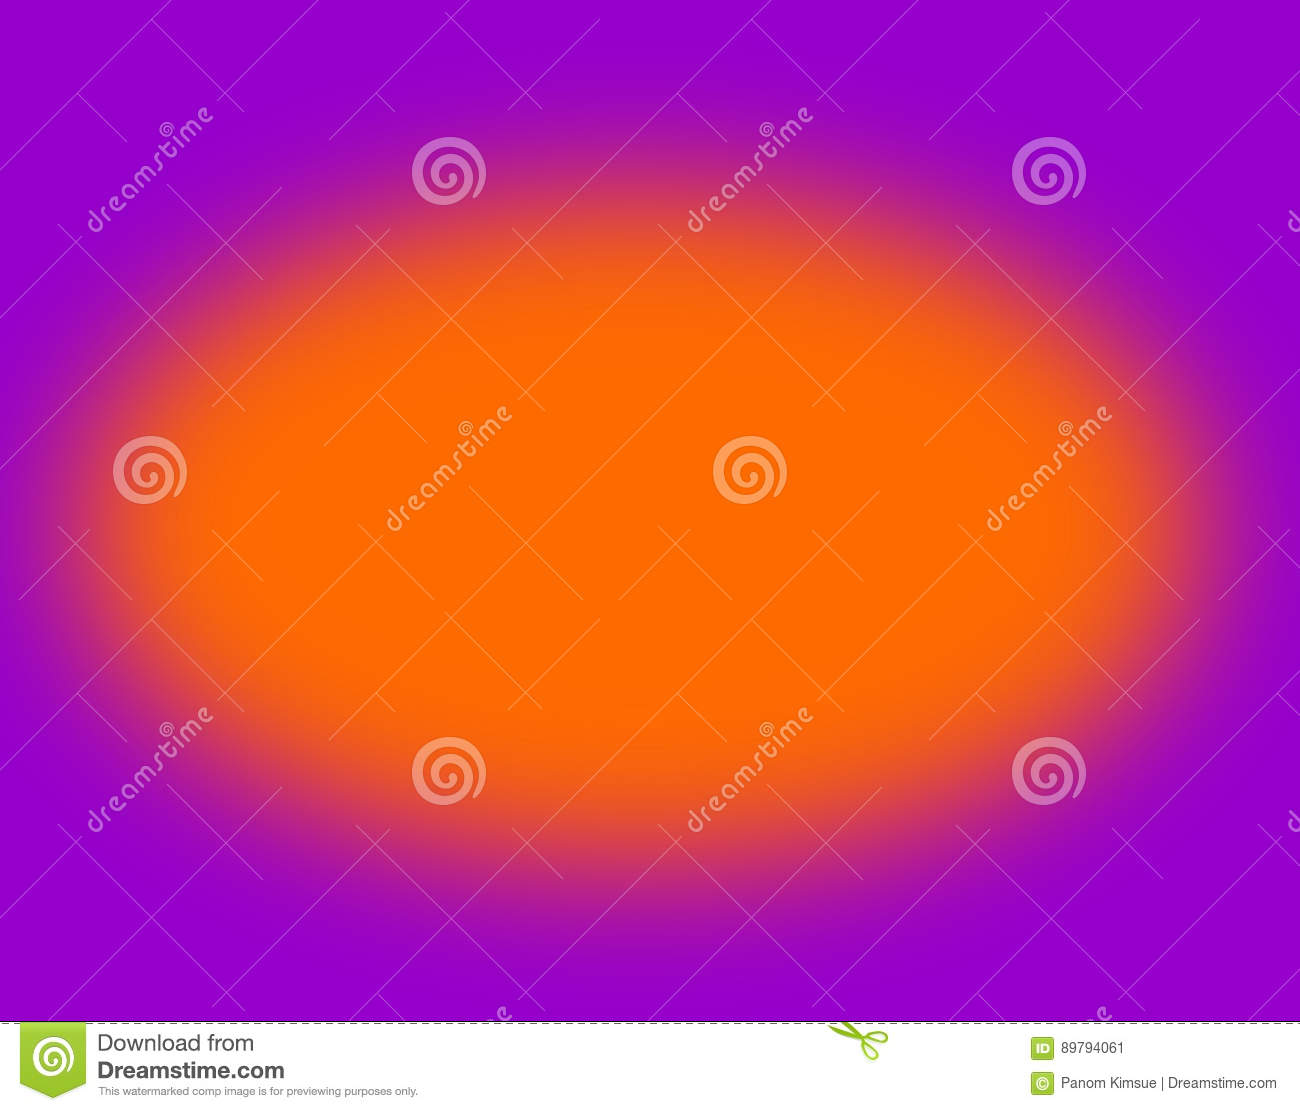 Purple And Orange Opposites Color Background Texture For Business